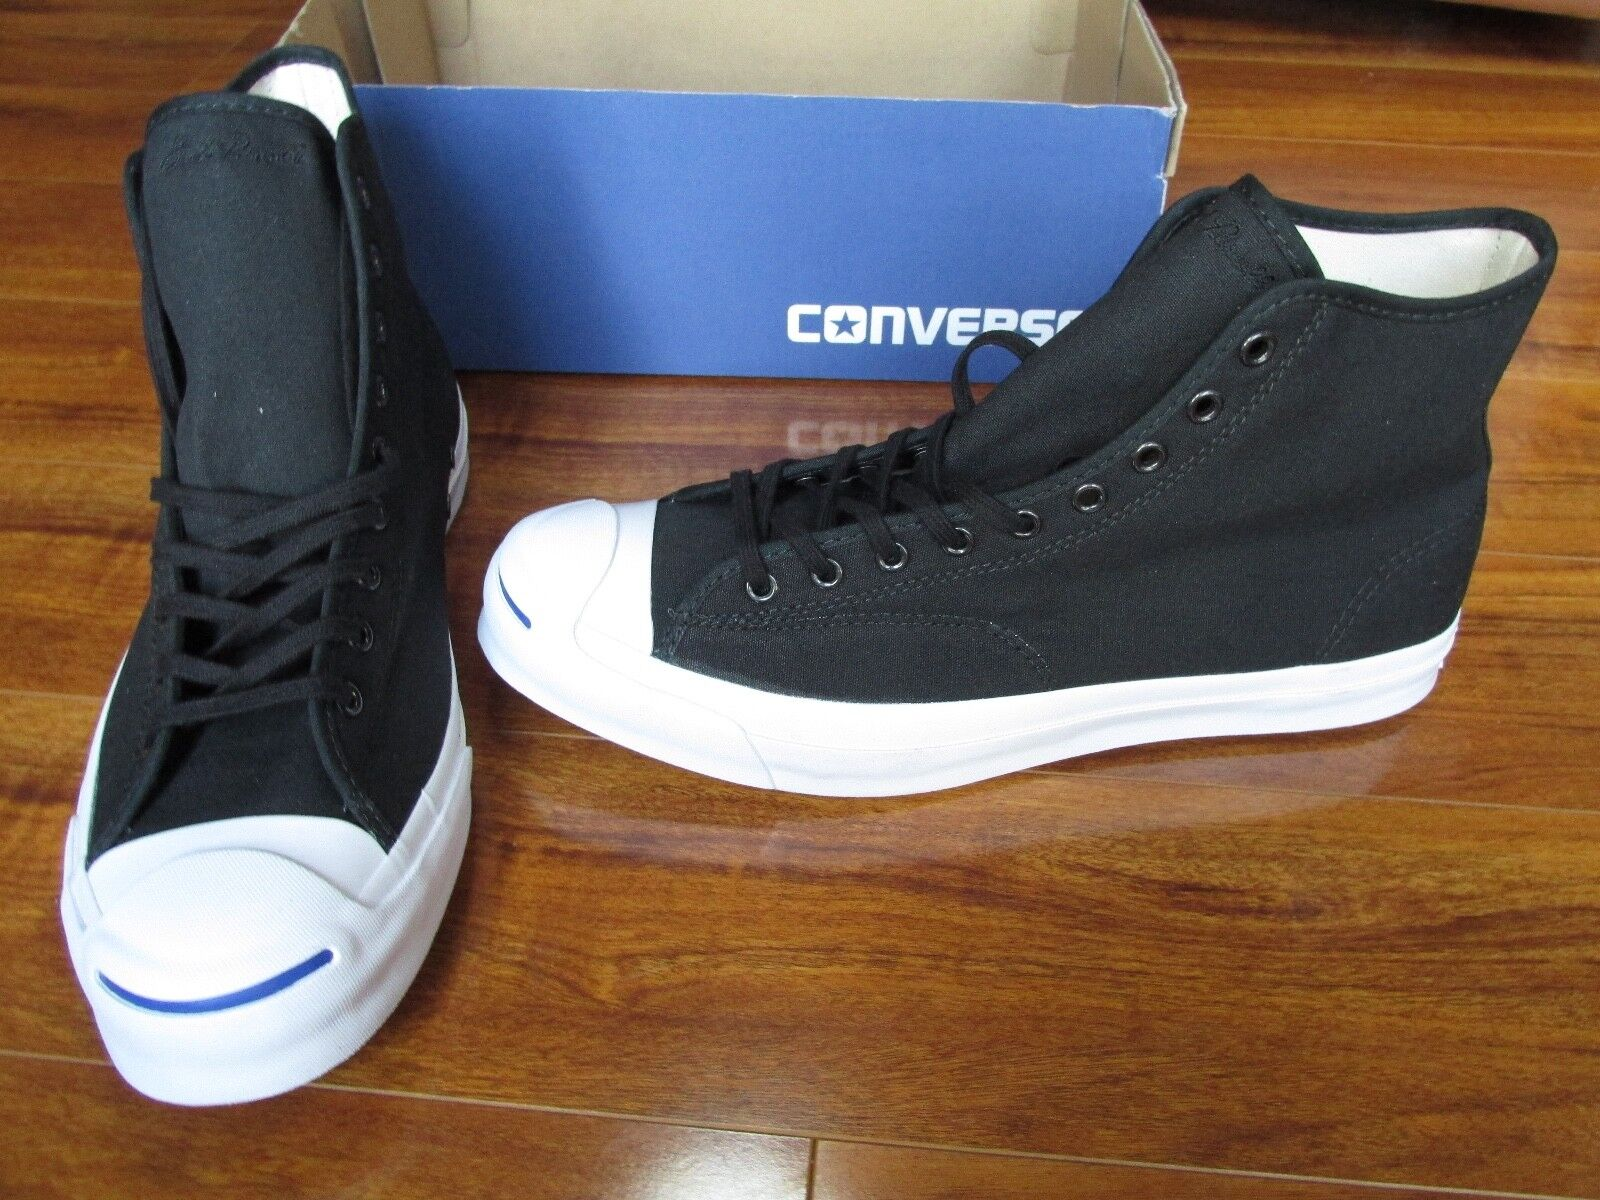 NEW Converse Shoes Jack Purcell Signature HI Shoes Converse MENS 11 Black Canvas 152667C $120. 5c69a5